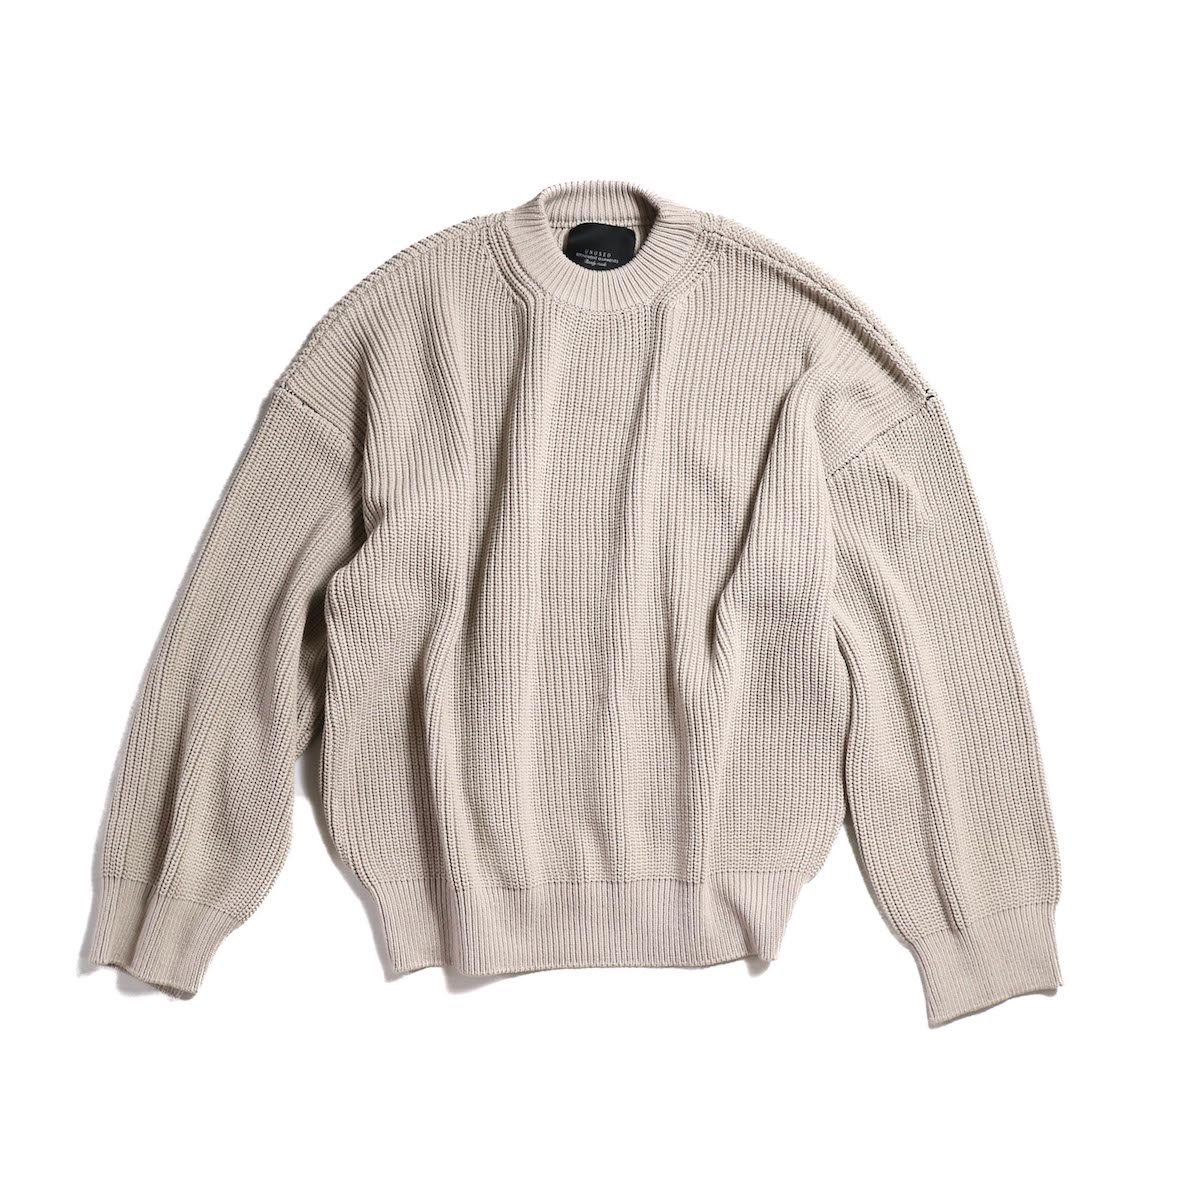 UNUSED / US1412 BIG SIZE 5G KNIT -BEIGE GRAY